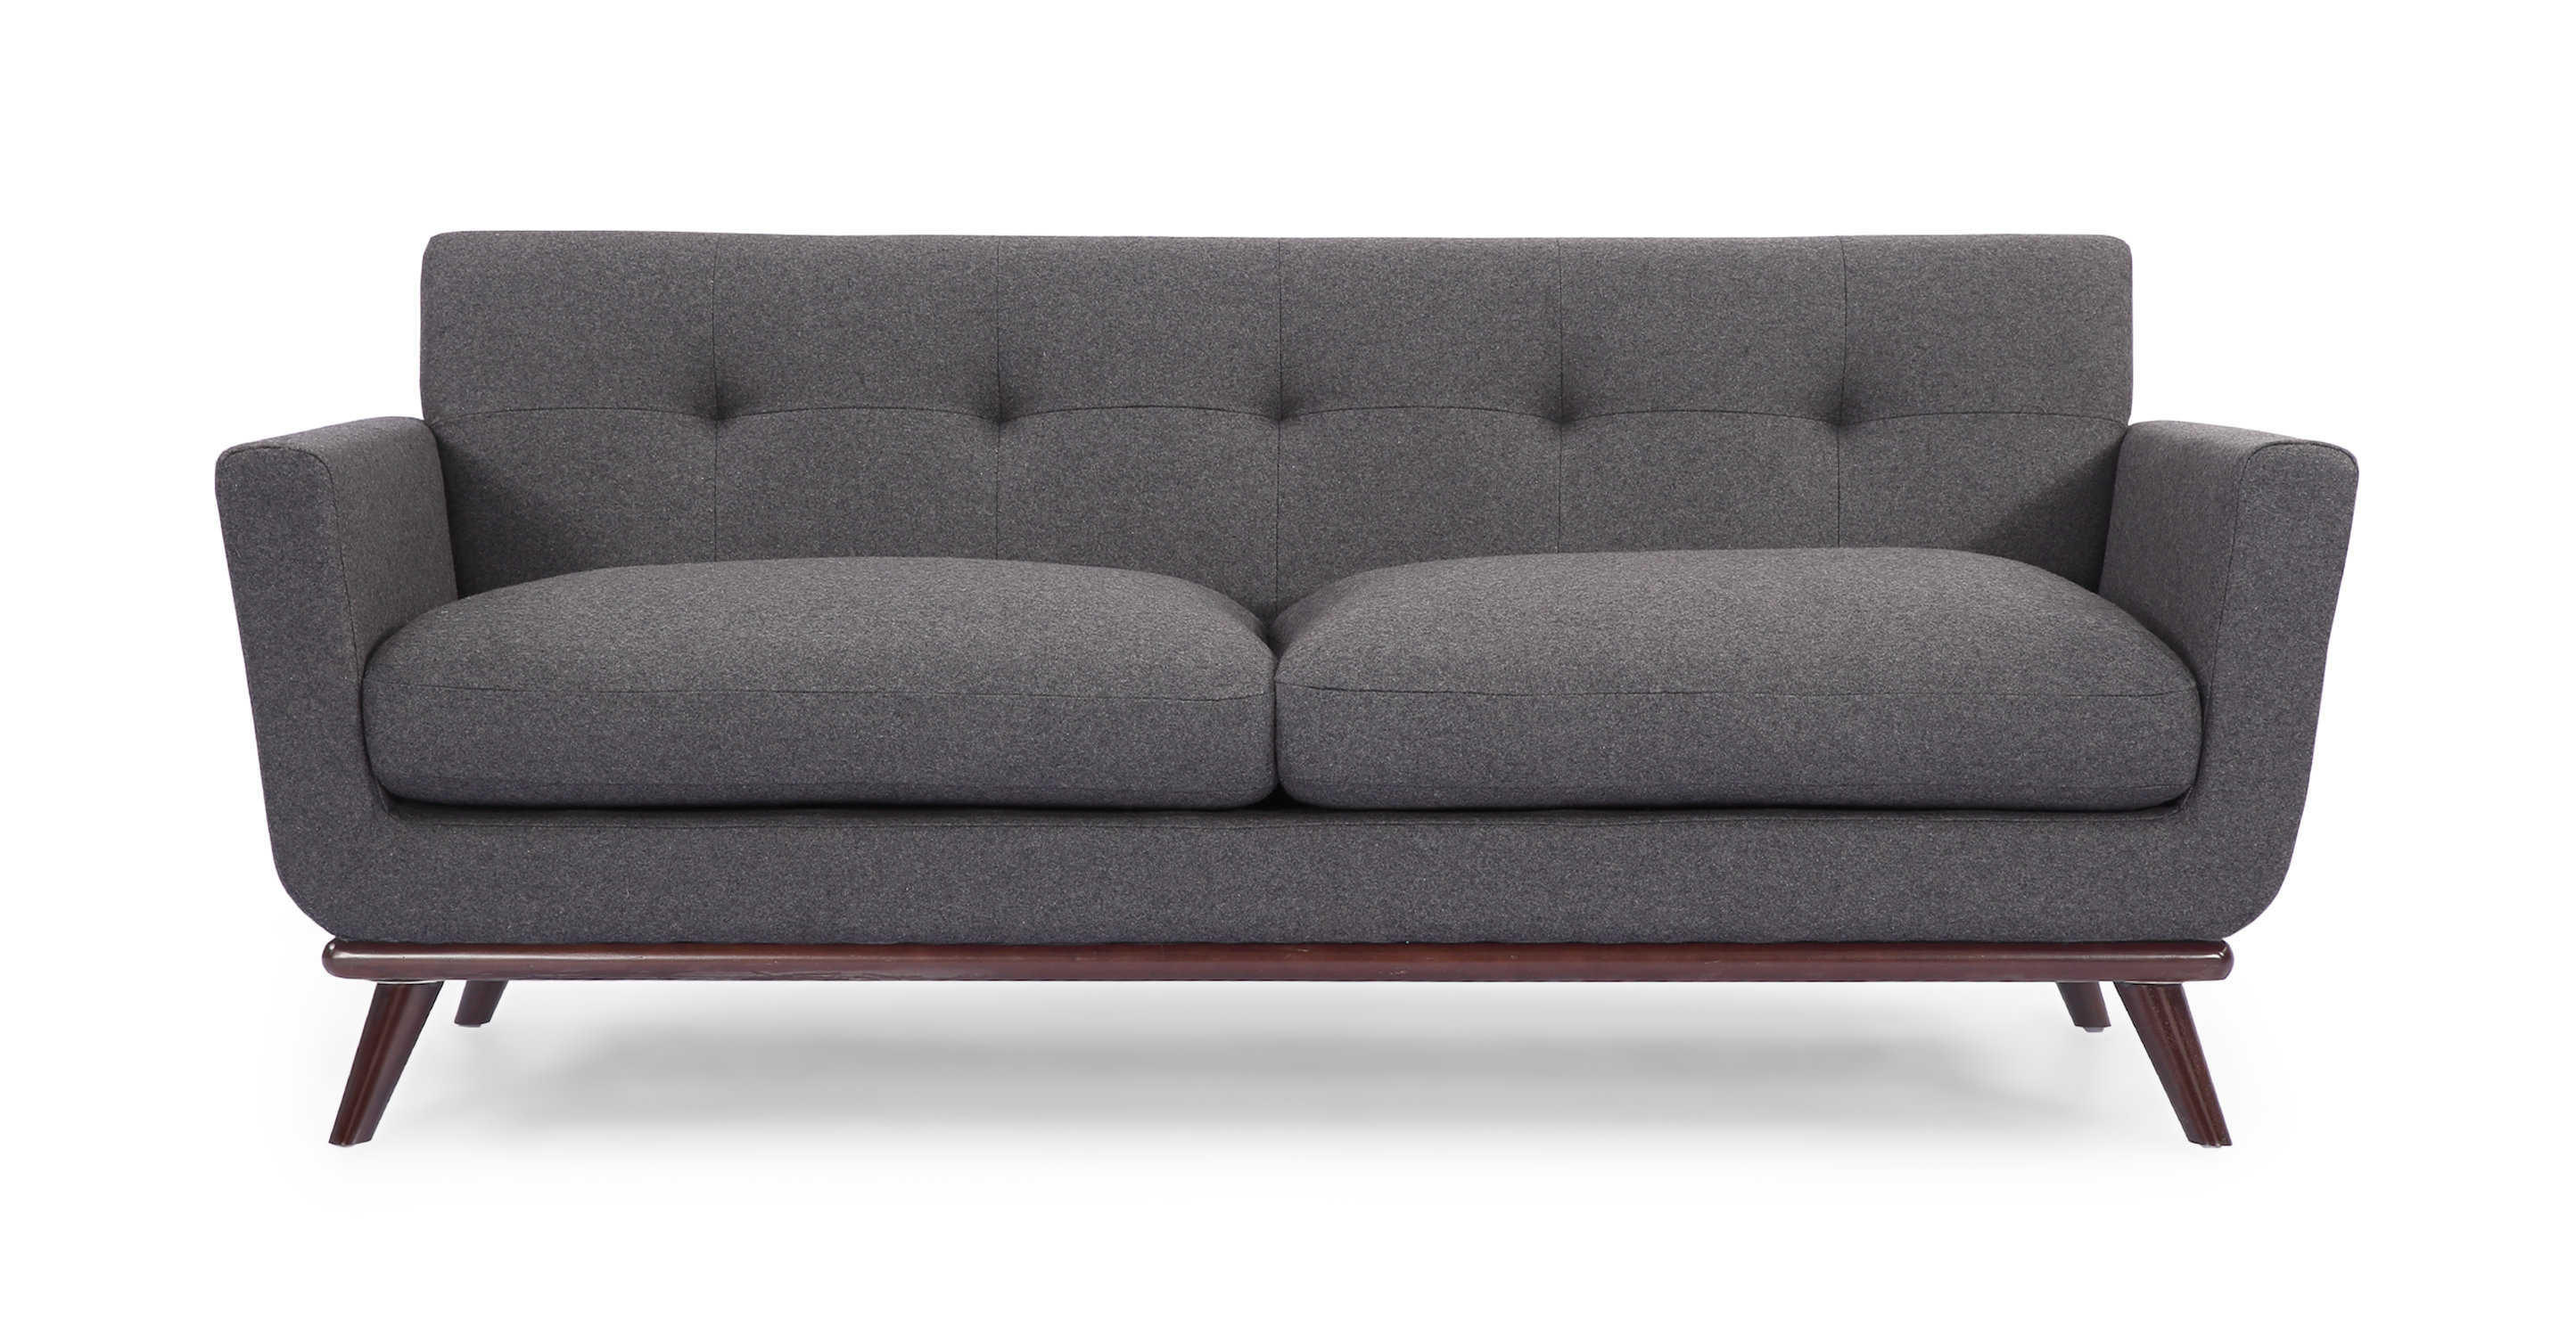 Corrigan Studio Luther Mid-Century Modern Vintage Sofa & Reviews | Wayfair